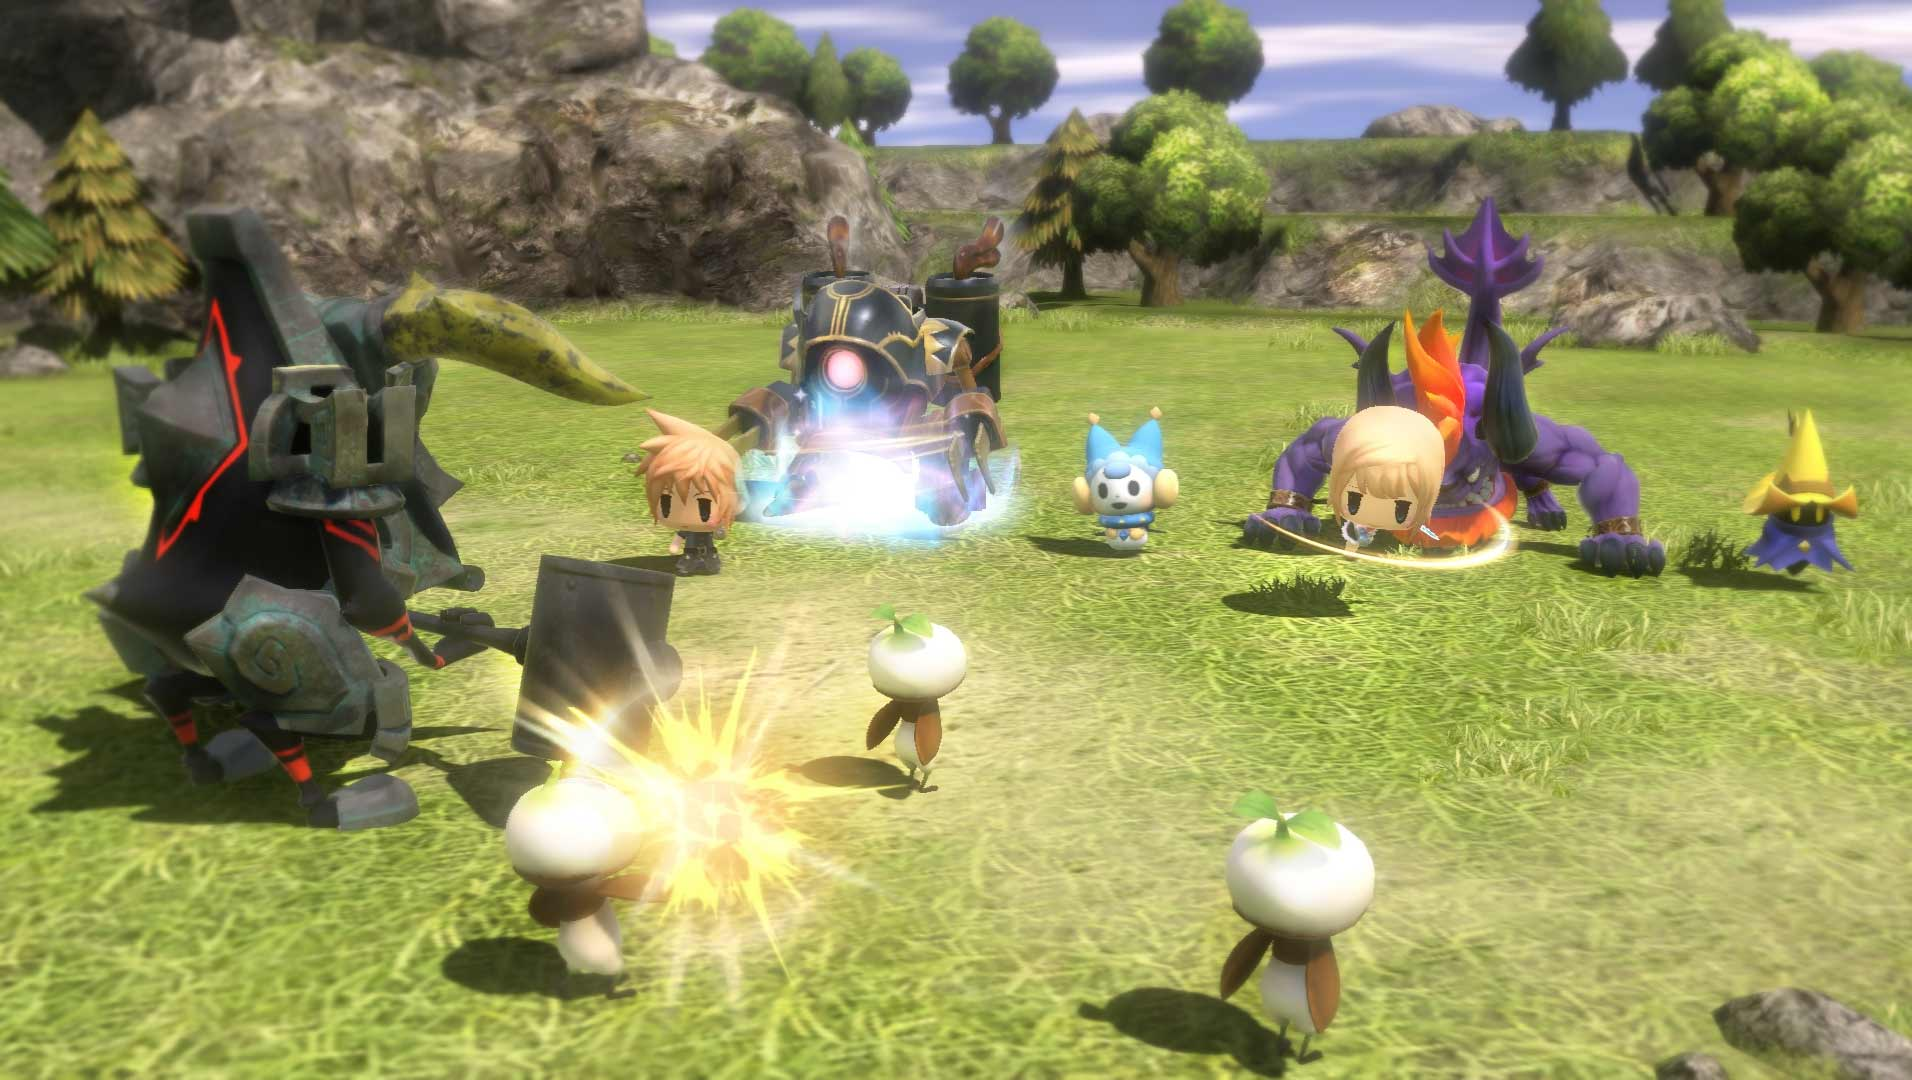 download world of final fantasy day one edition repack - fitgirl singlelink iso rar part google drive direct link uptobox ftp link magnet torrent thepiratebay kickass alternative